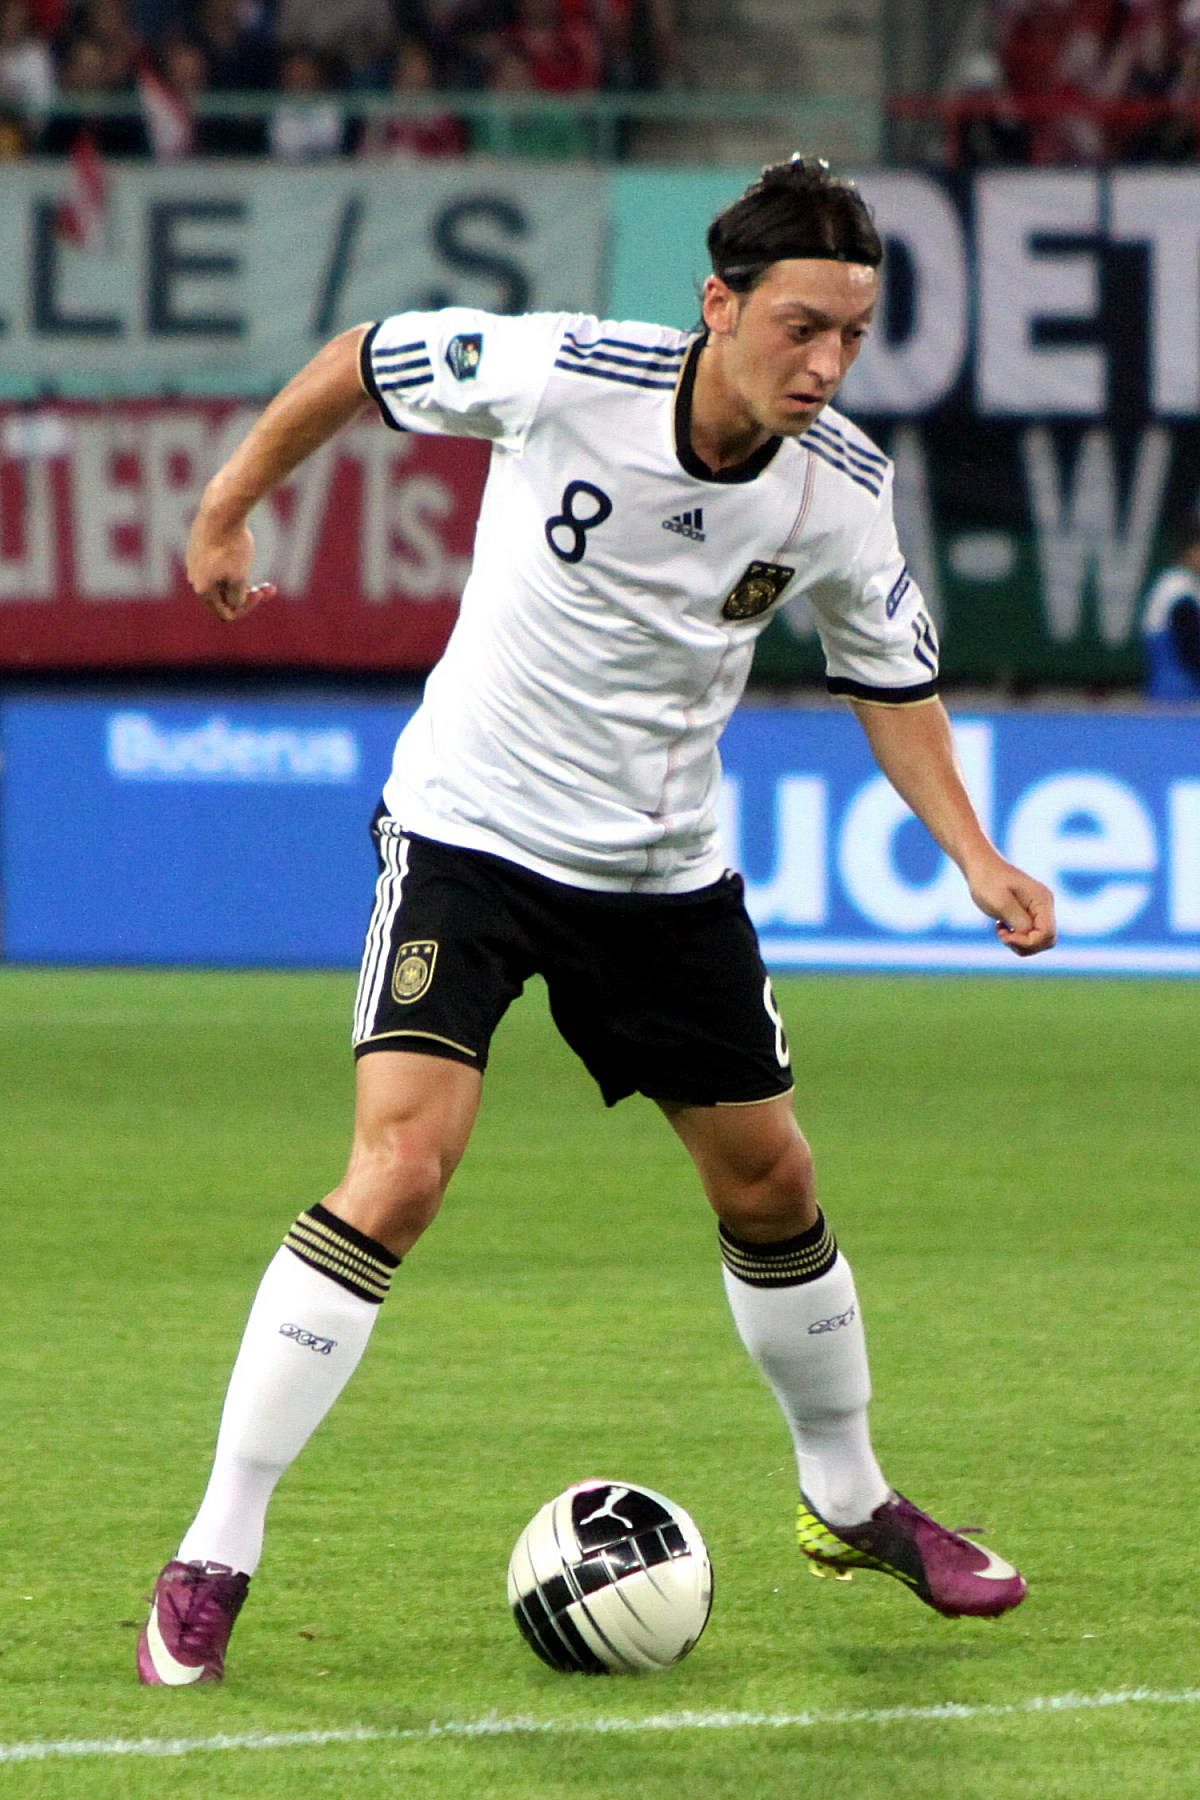 Mesut Özil, Germany national football team (04).jpg